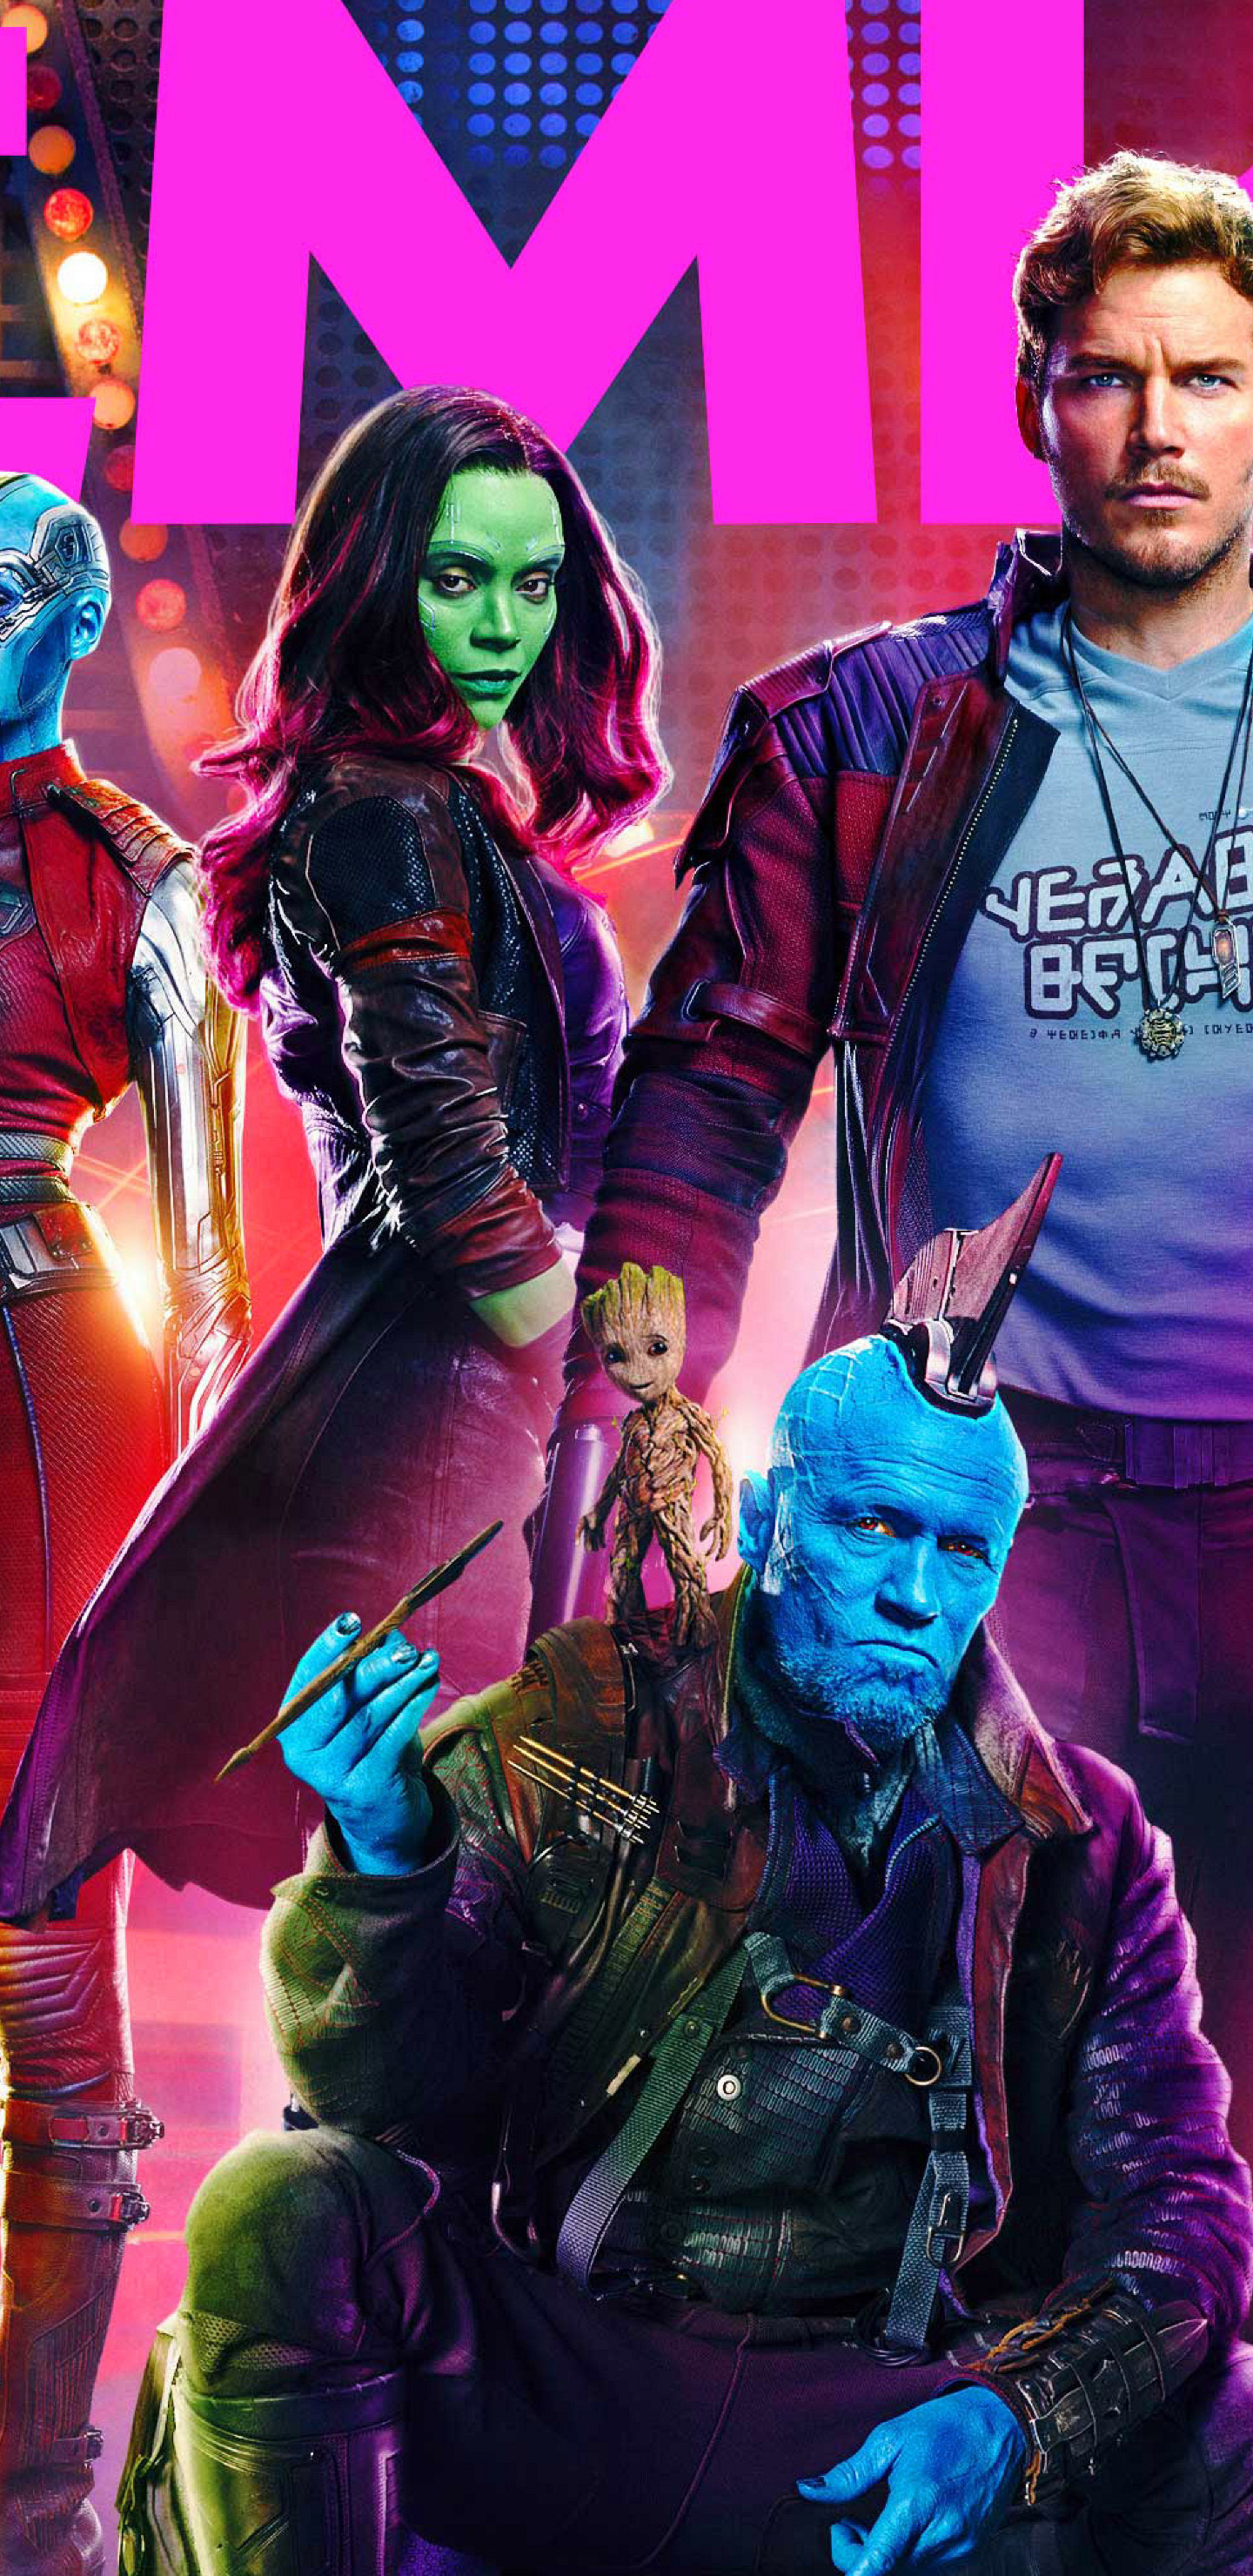 1440x2960 Guardians Of The Galaxy Vol 2 Empire Cover Samsung